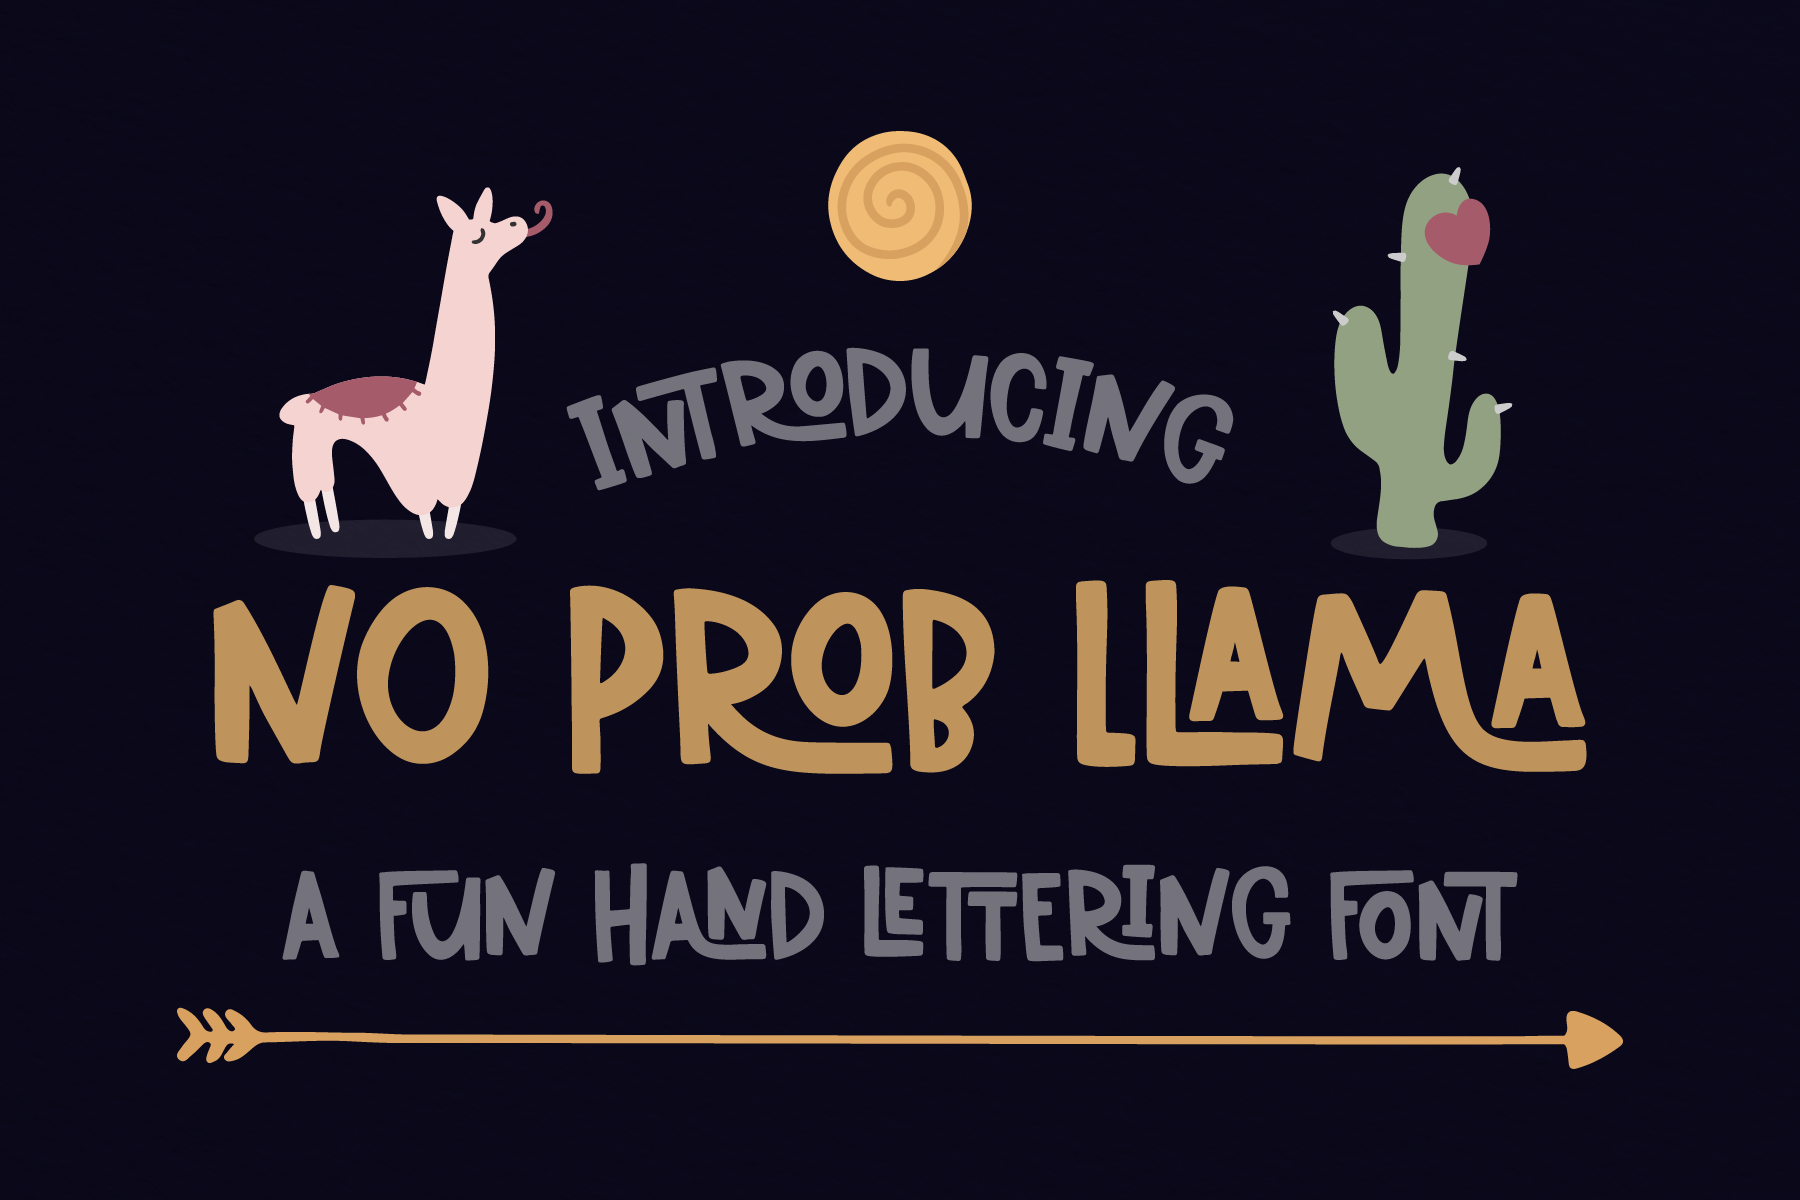 Download Free No Prob Llama Font By Emylia Design Creative Fabrica for Cricut Explore, Silhouette and other cutting machines.